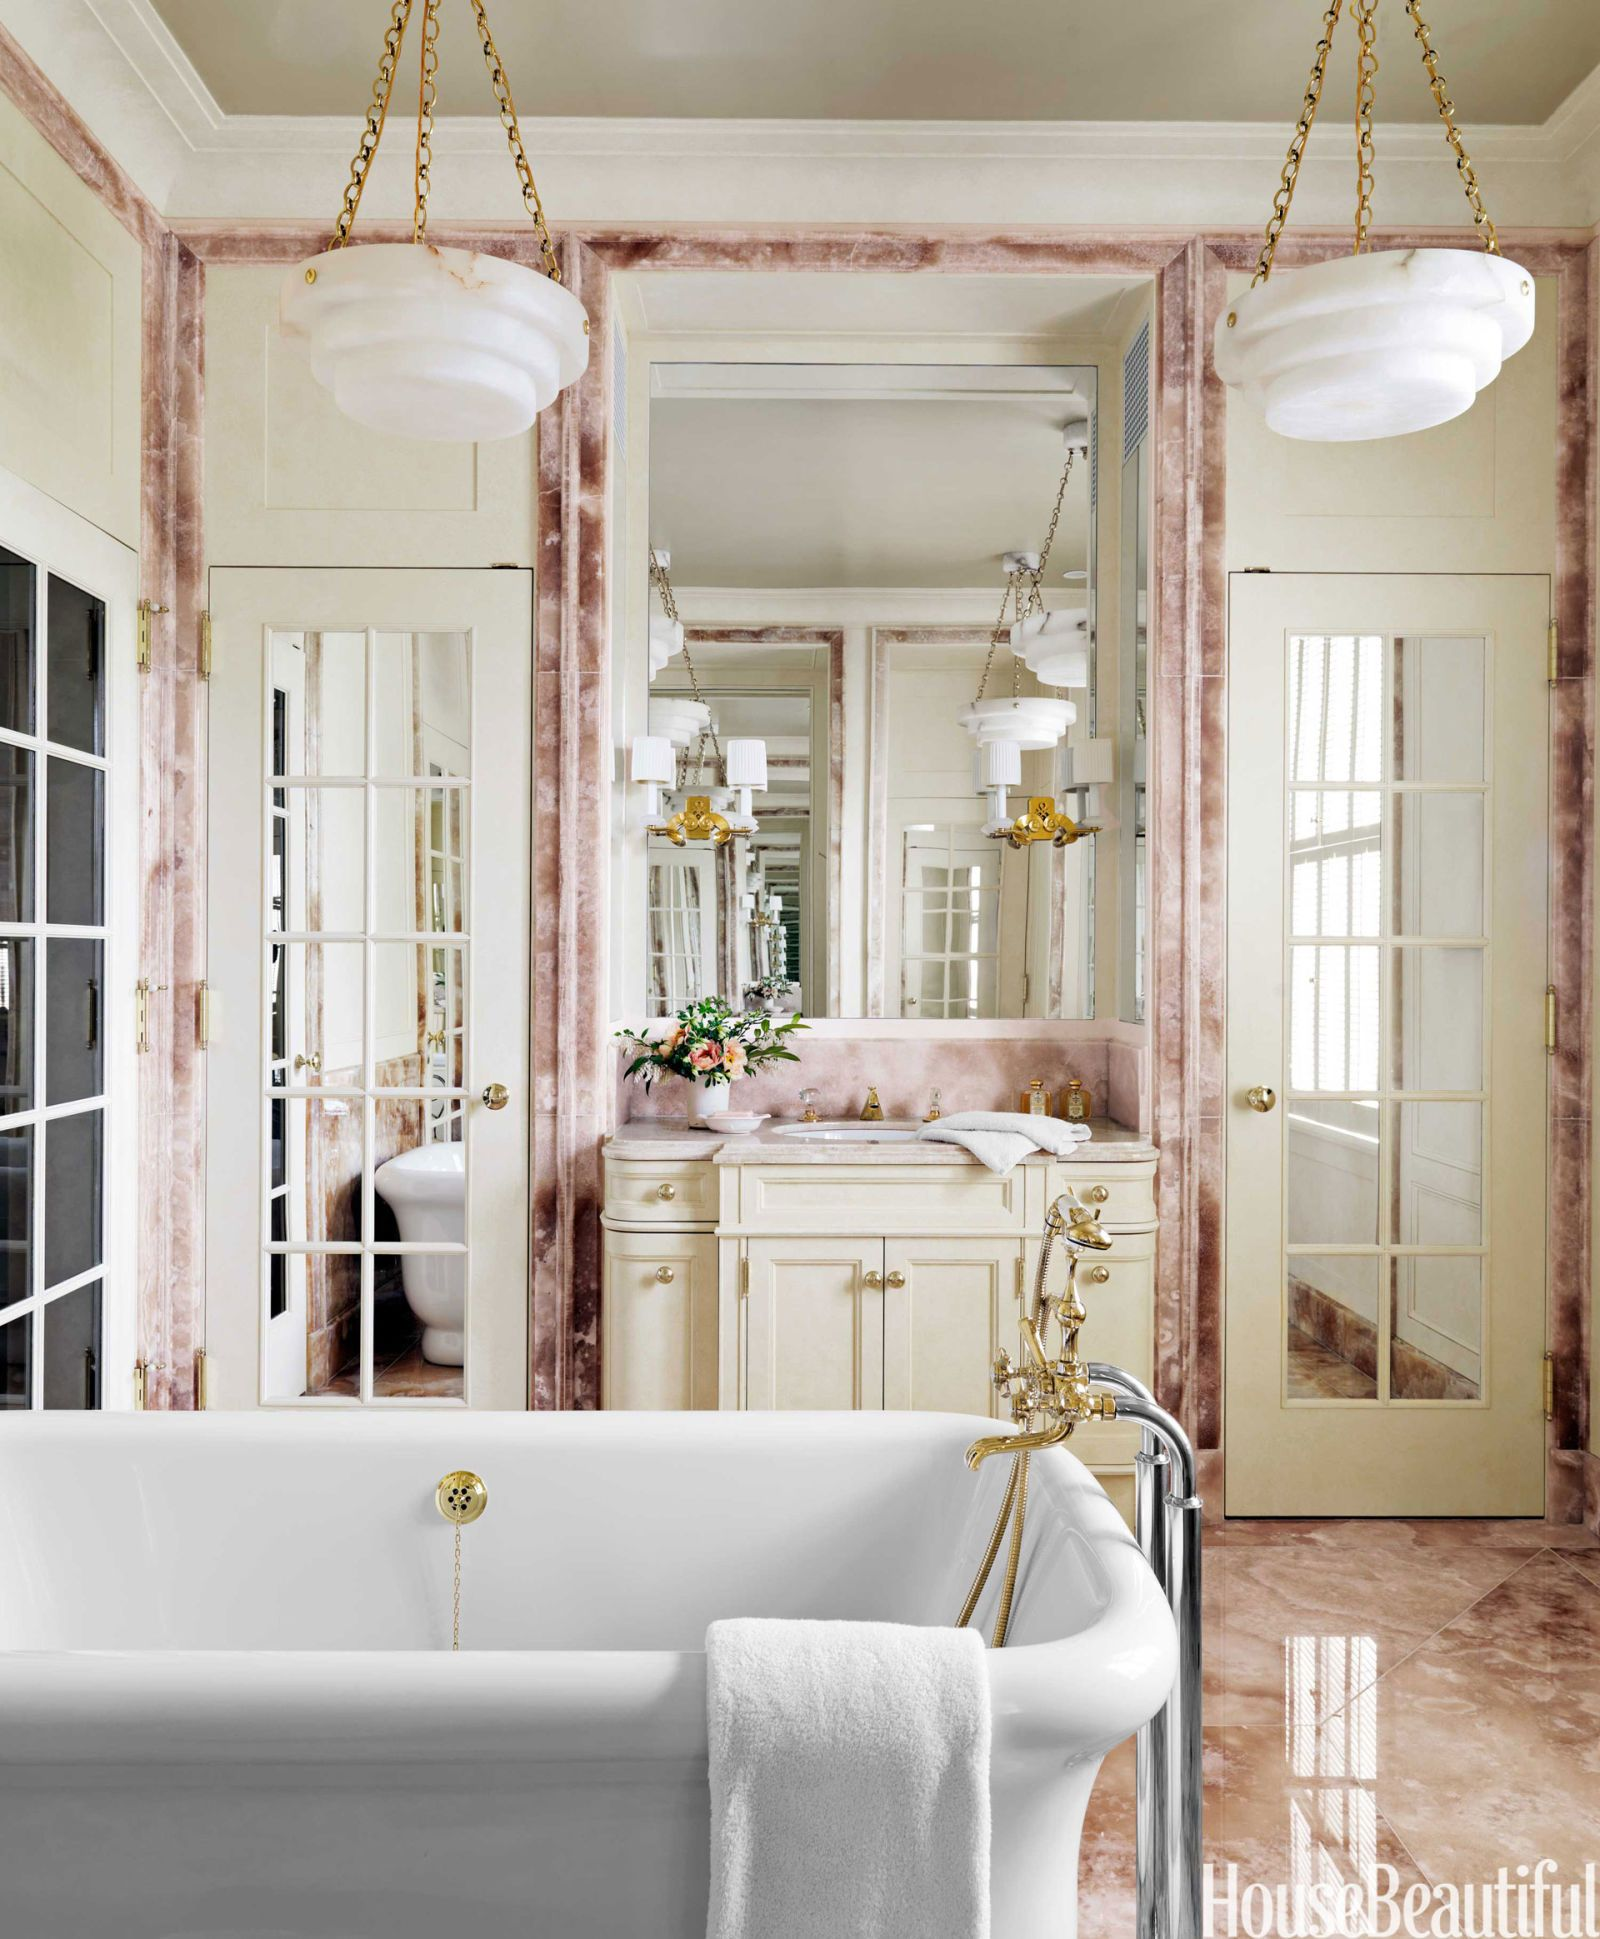 Easy Home Renovation Ideas - Best House Upgrades